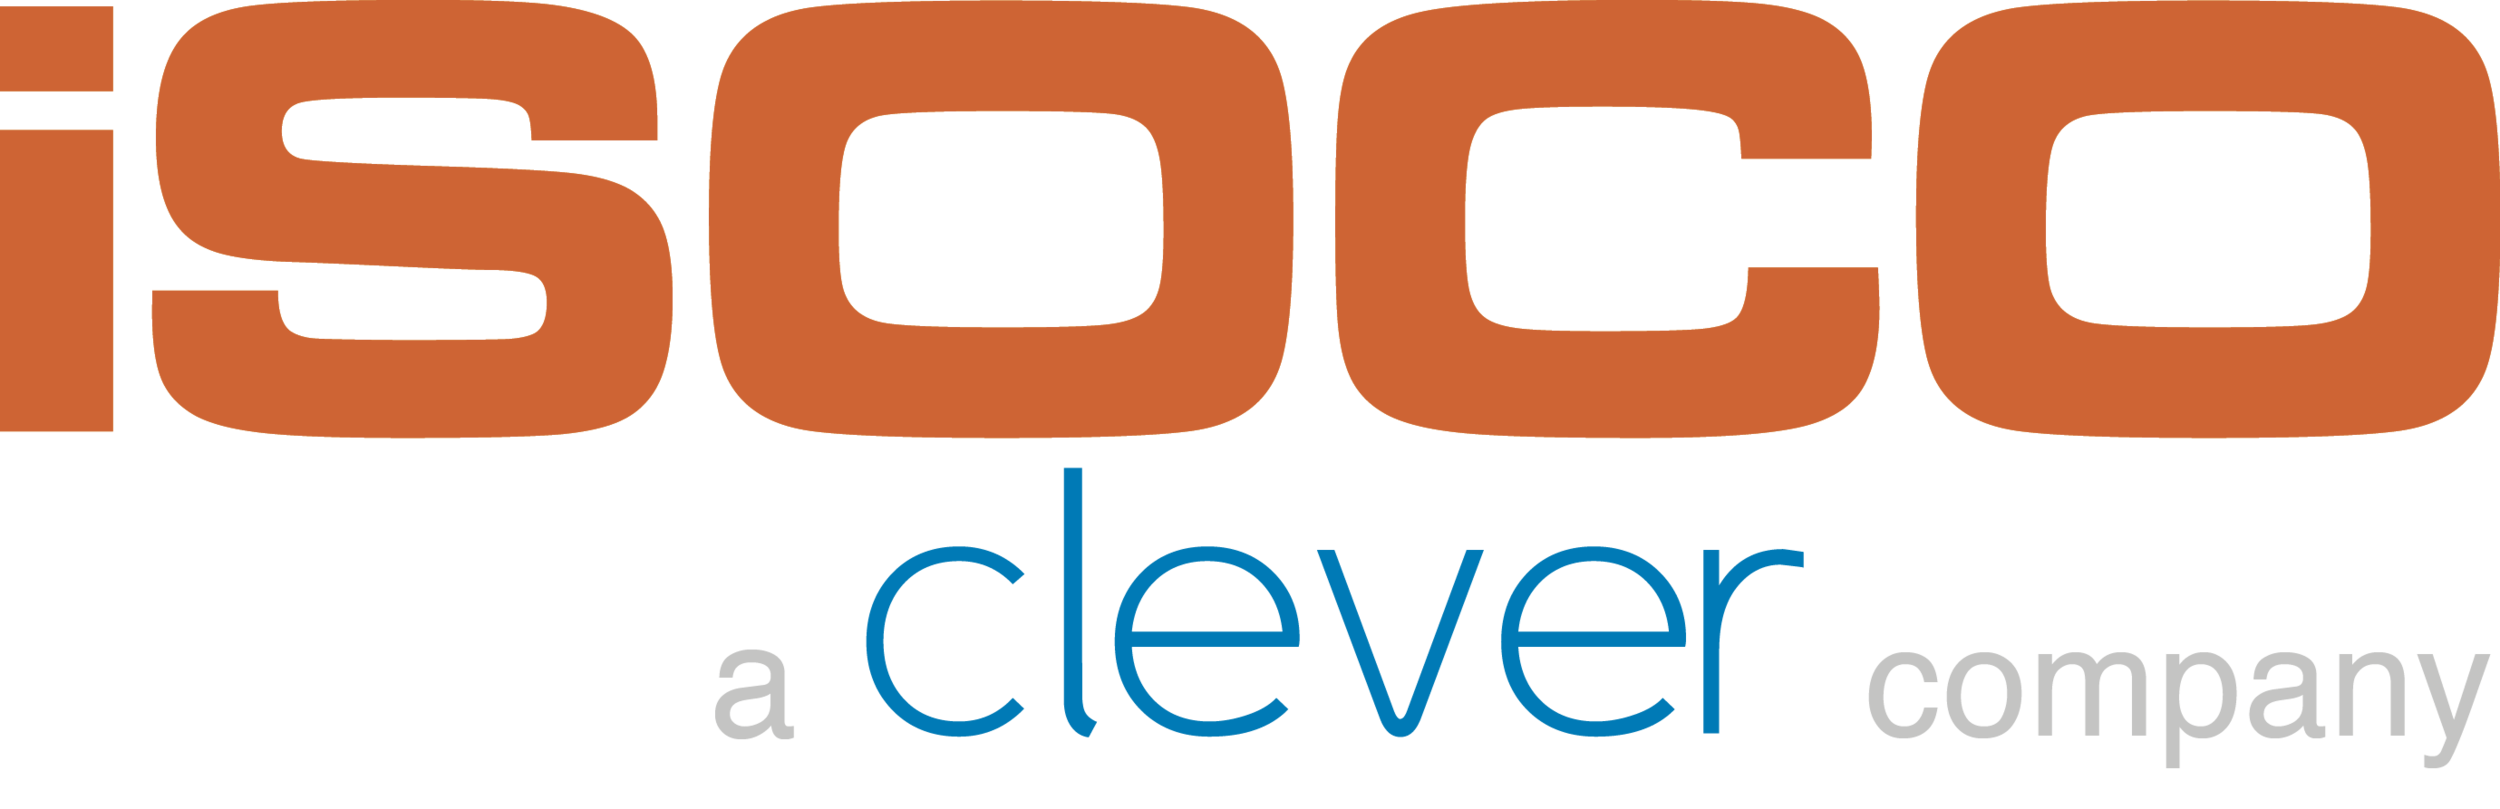 Logo_iSOCO_CLEVER.png